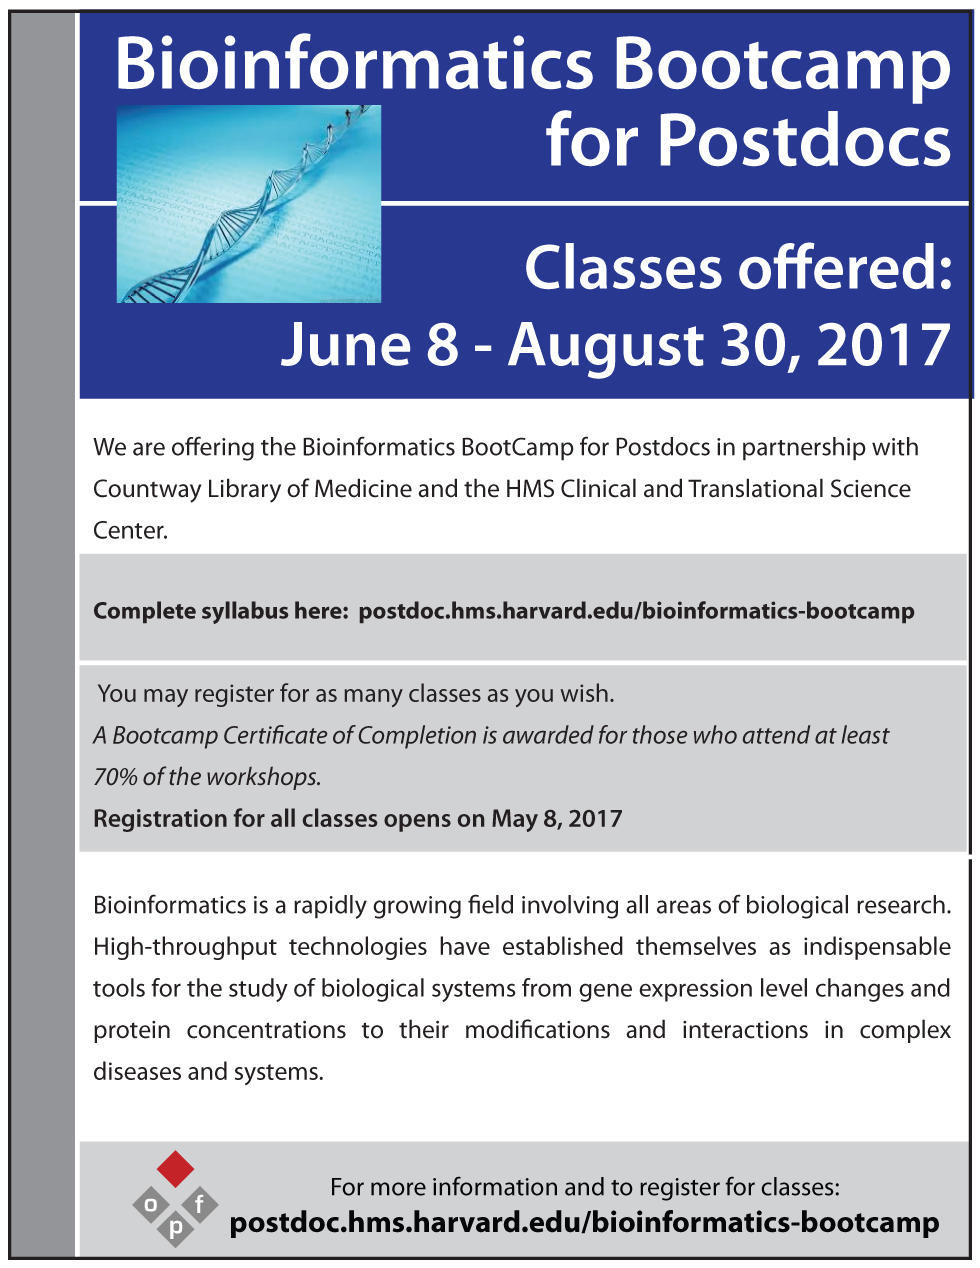 Bioinformatics Bootcamp Flier